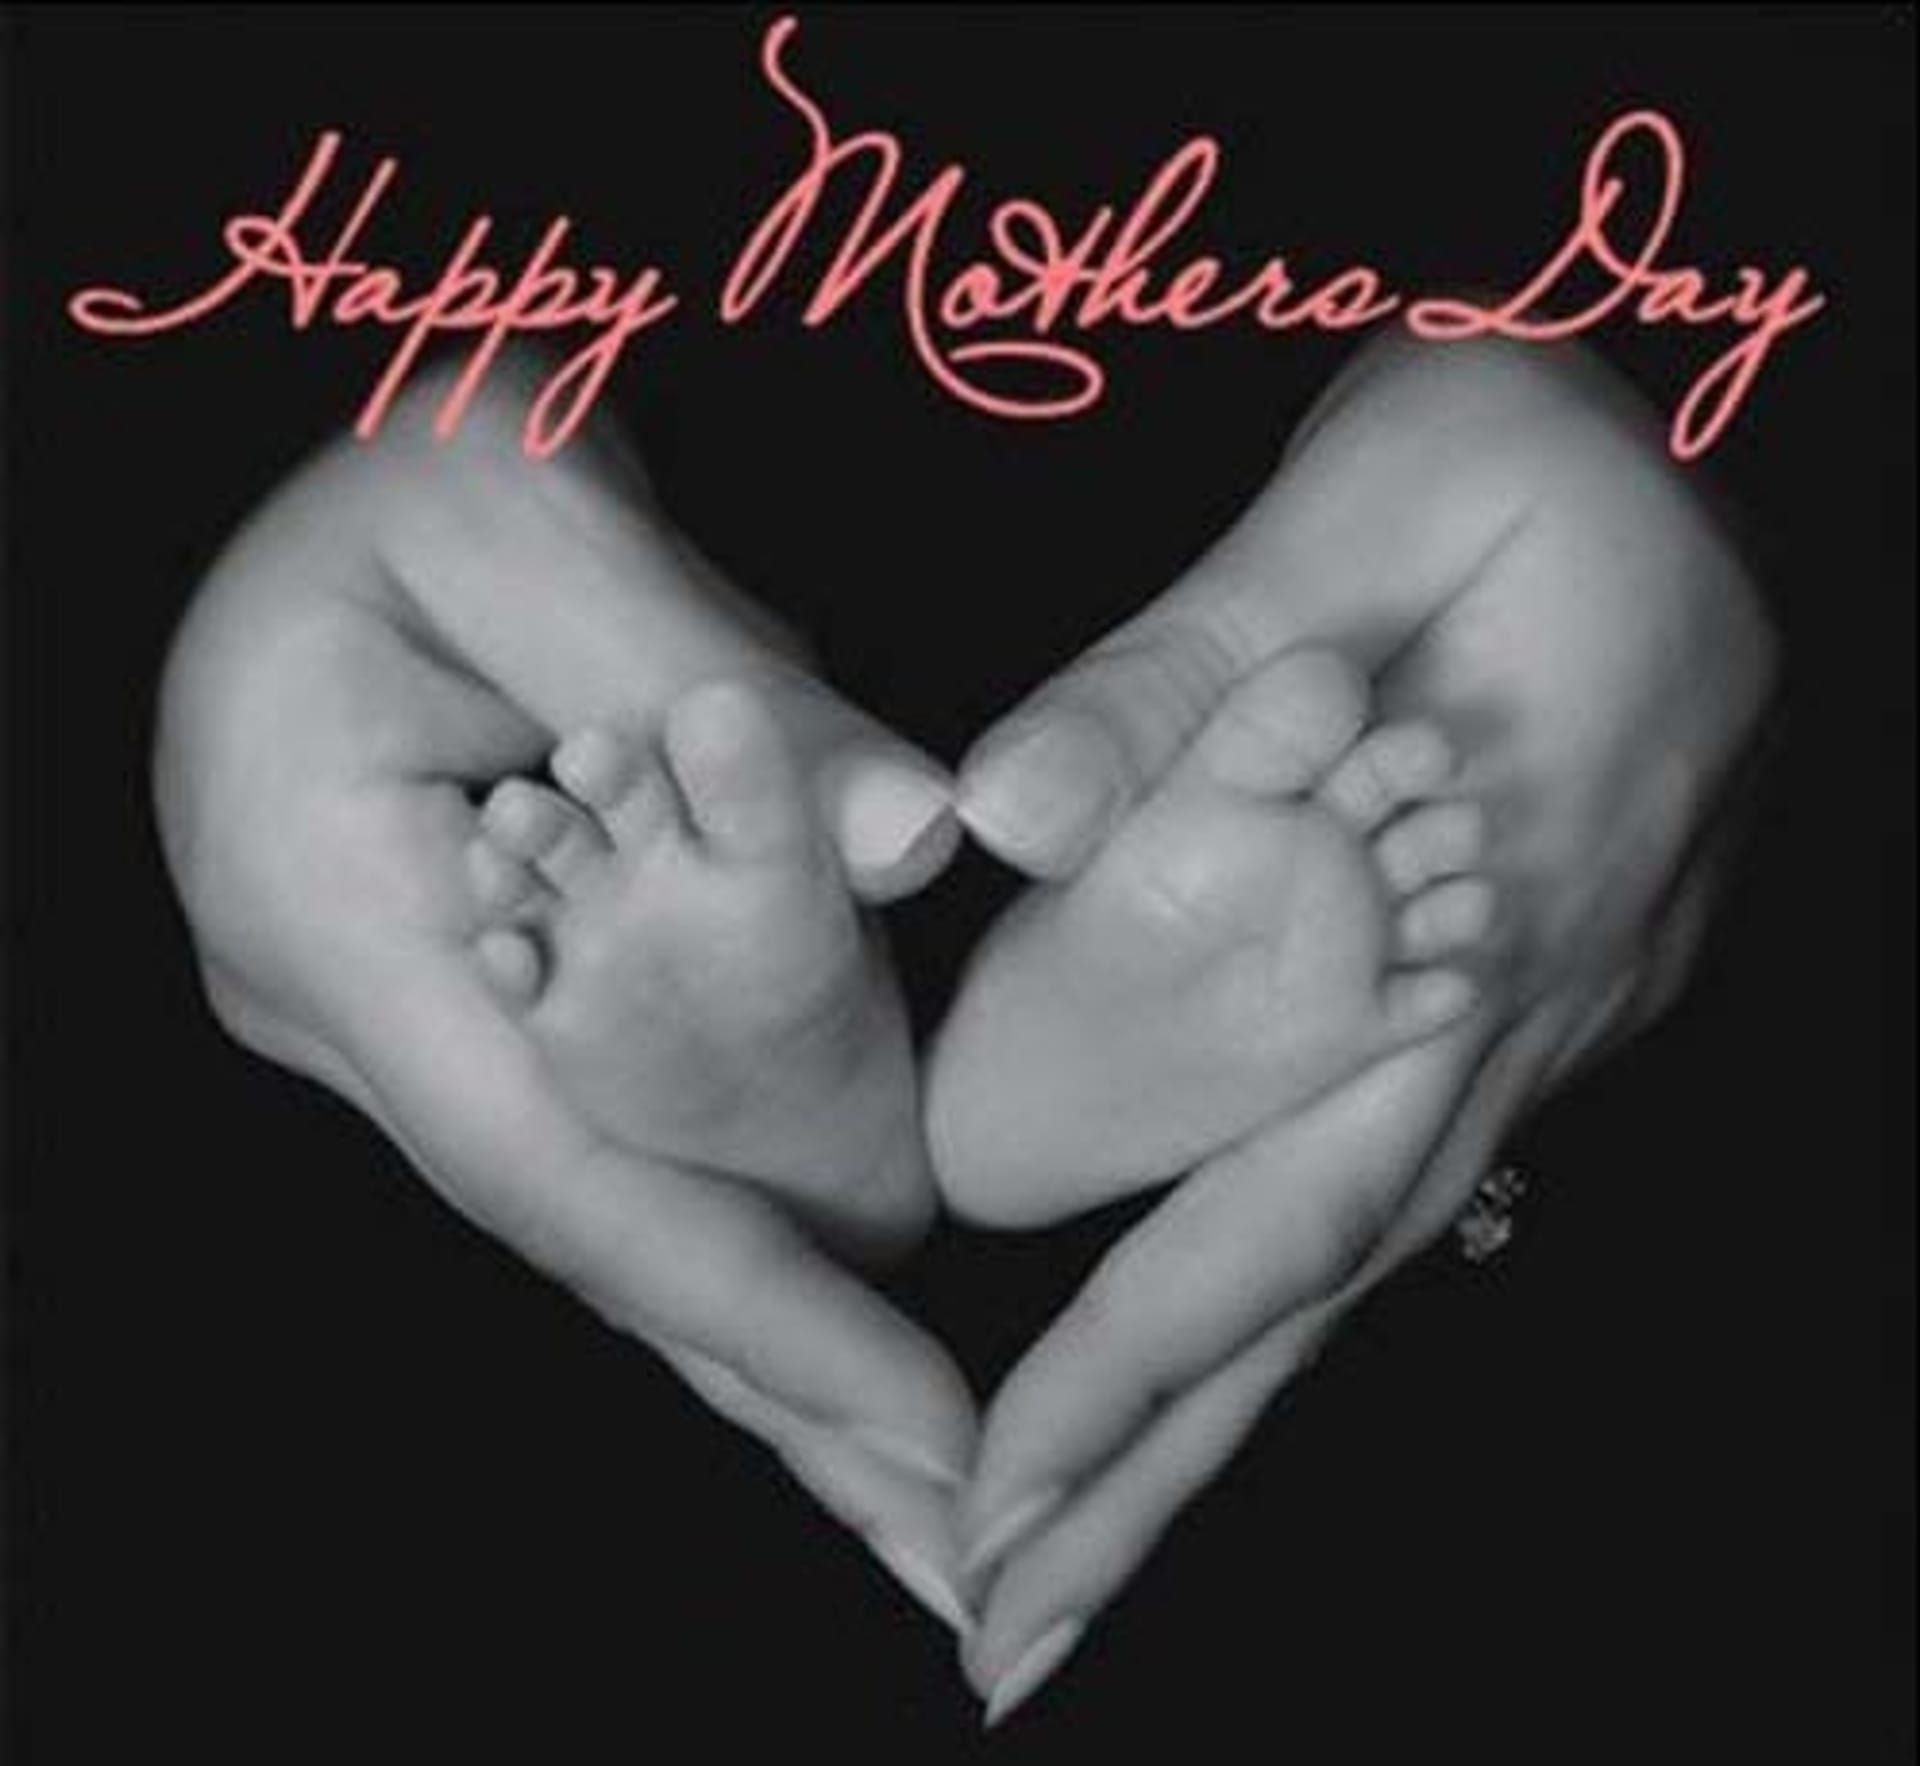 happy mother's day baby's feet in mother's hands